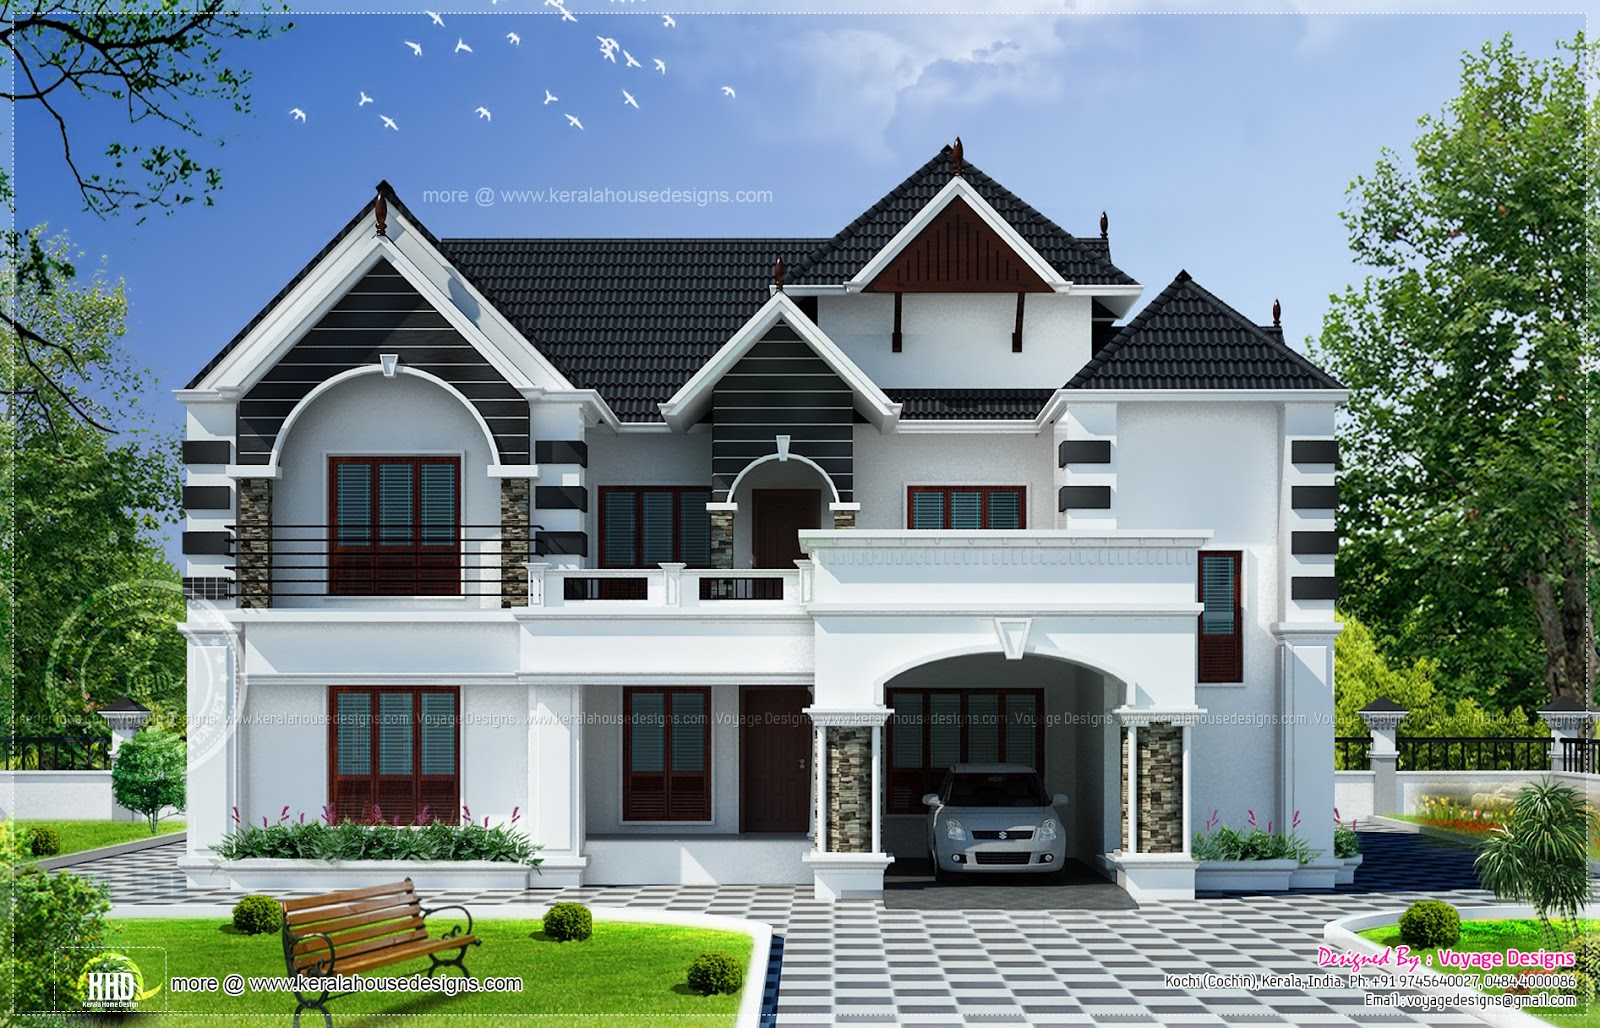 4 bedroom colonial style house kerala home design and for Colonial style homes floor plans